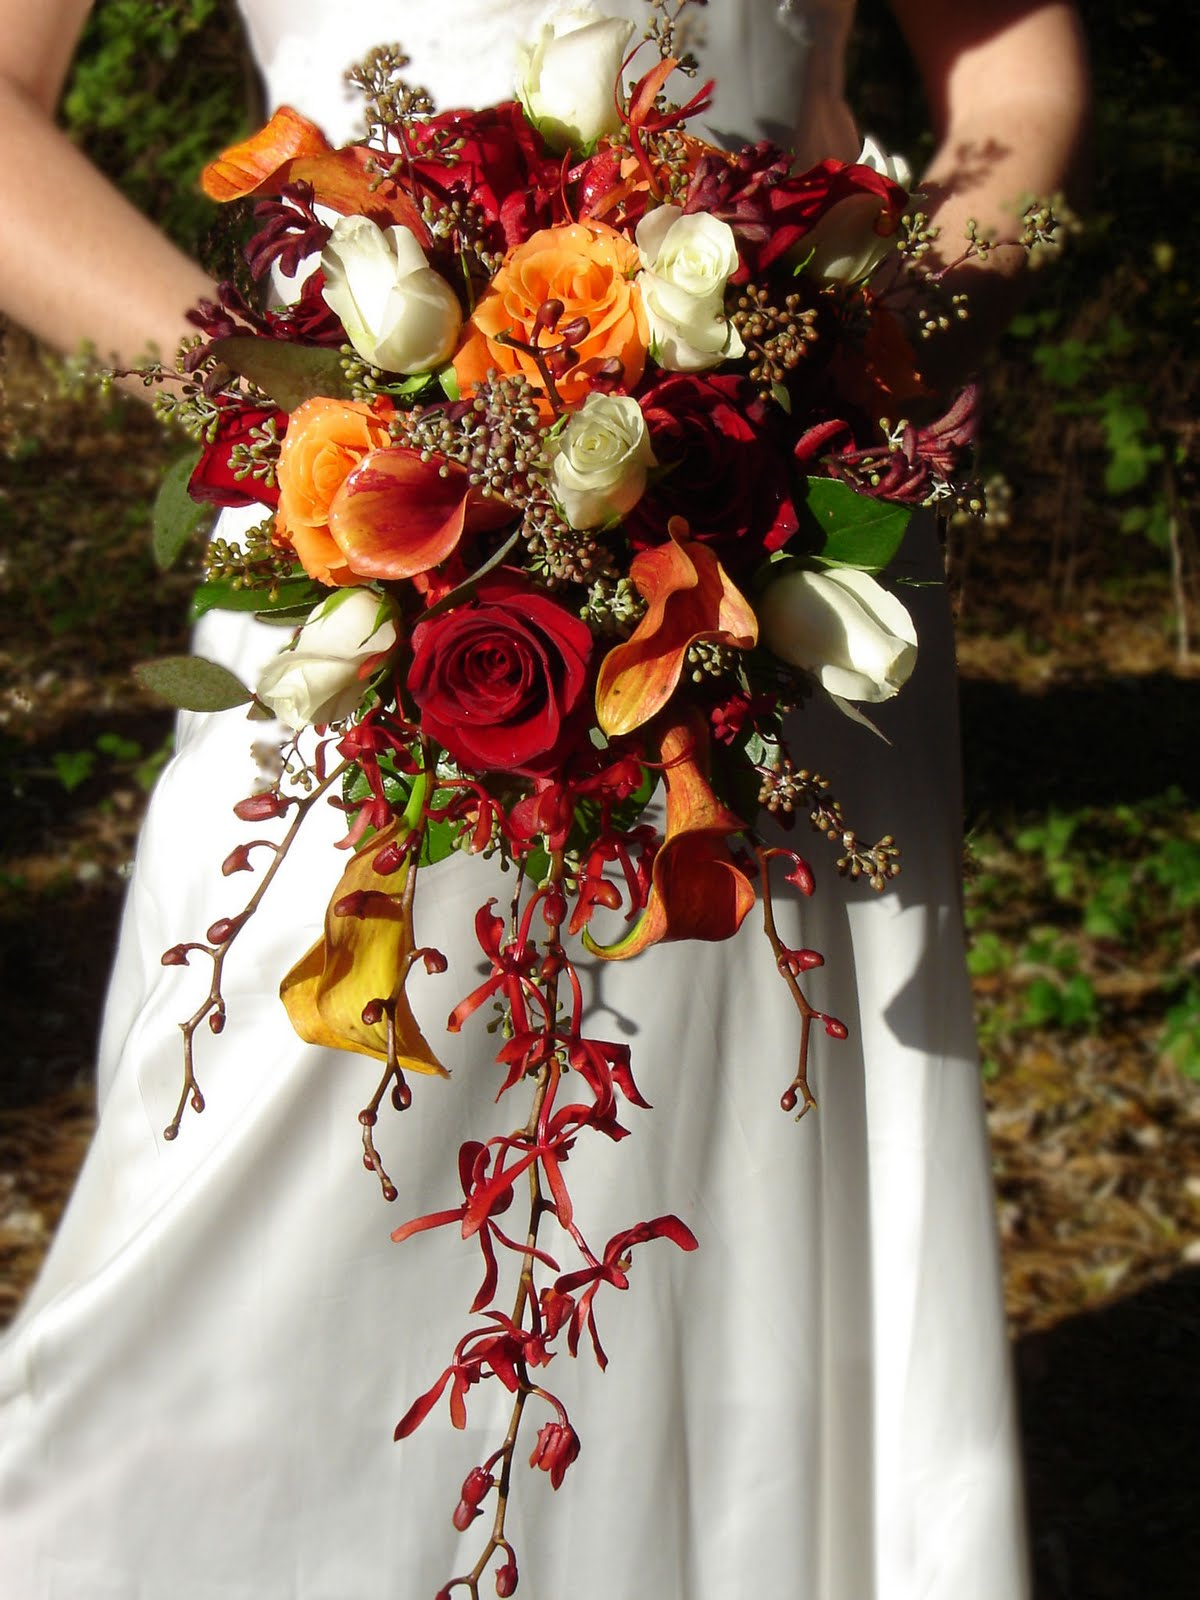 1000+ Images About Rustic Fall Wedding Ideas On Pinterest